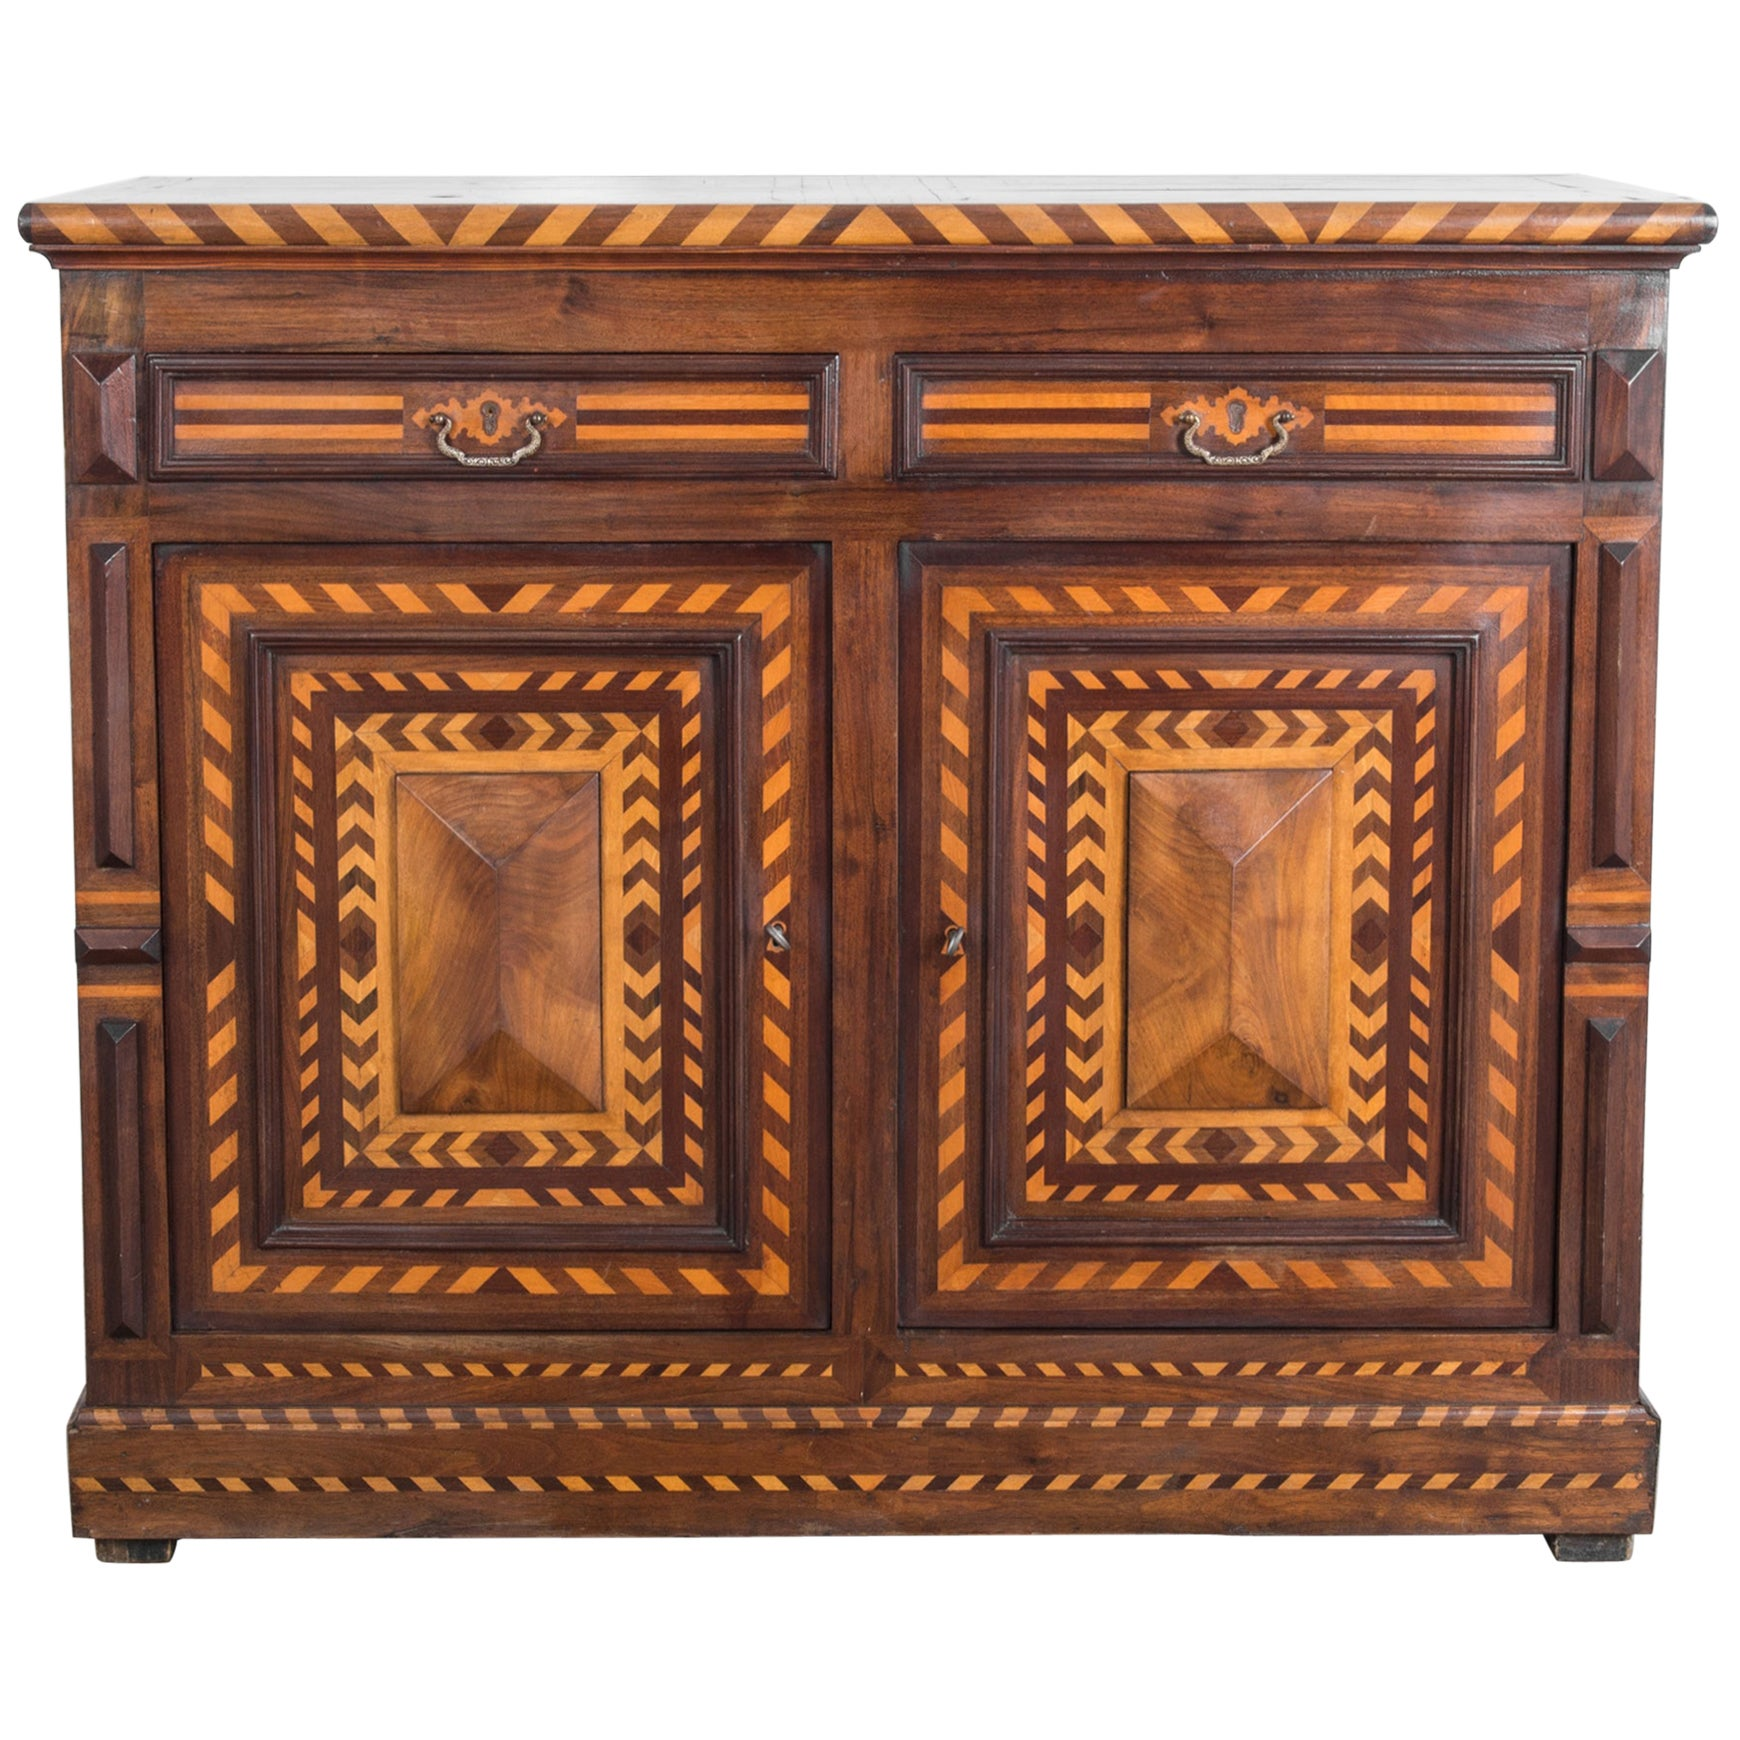 Antique Marquetry Wooden Buffet Cabinet